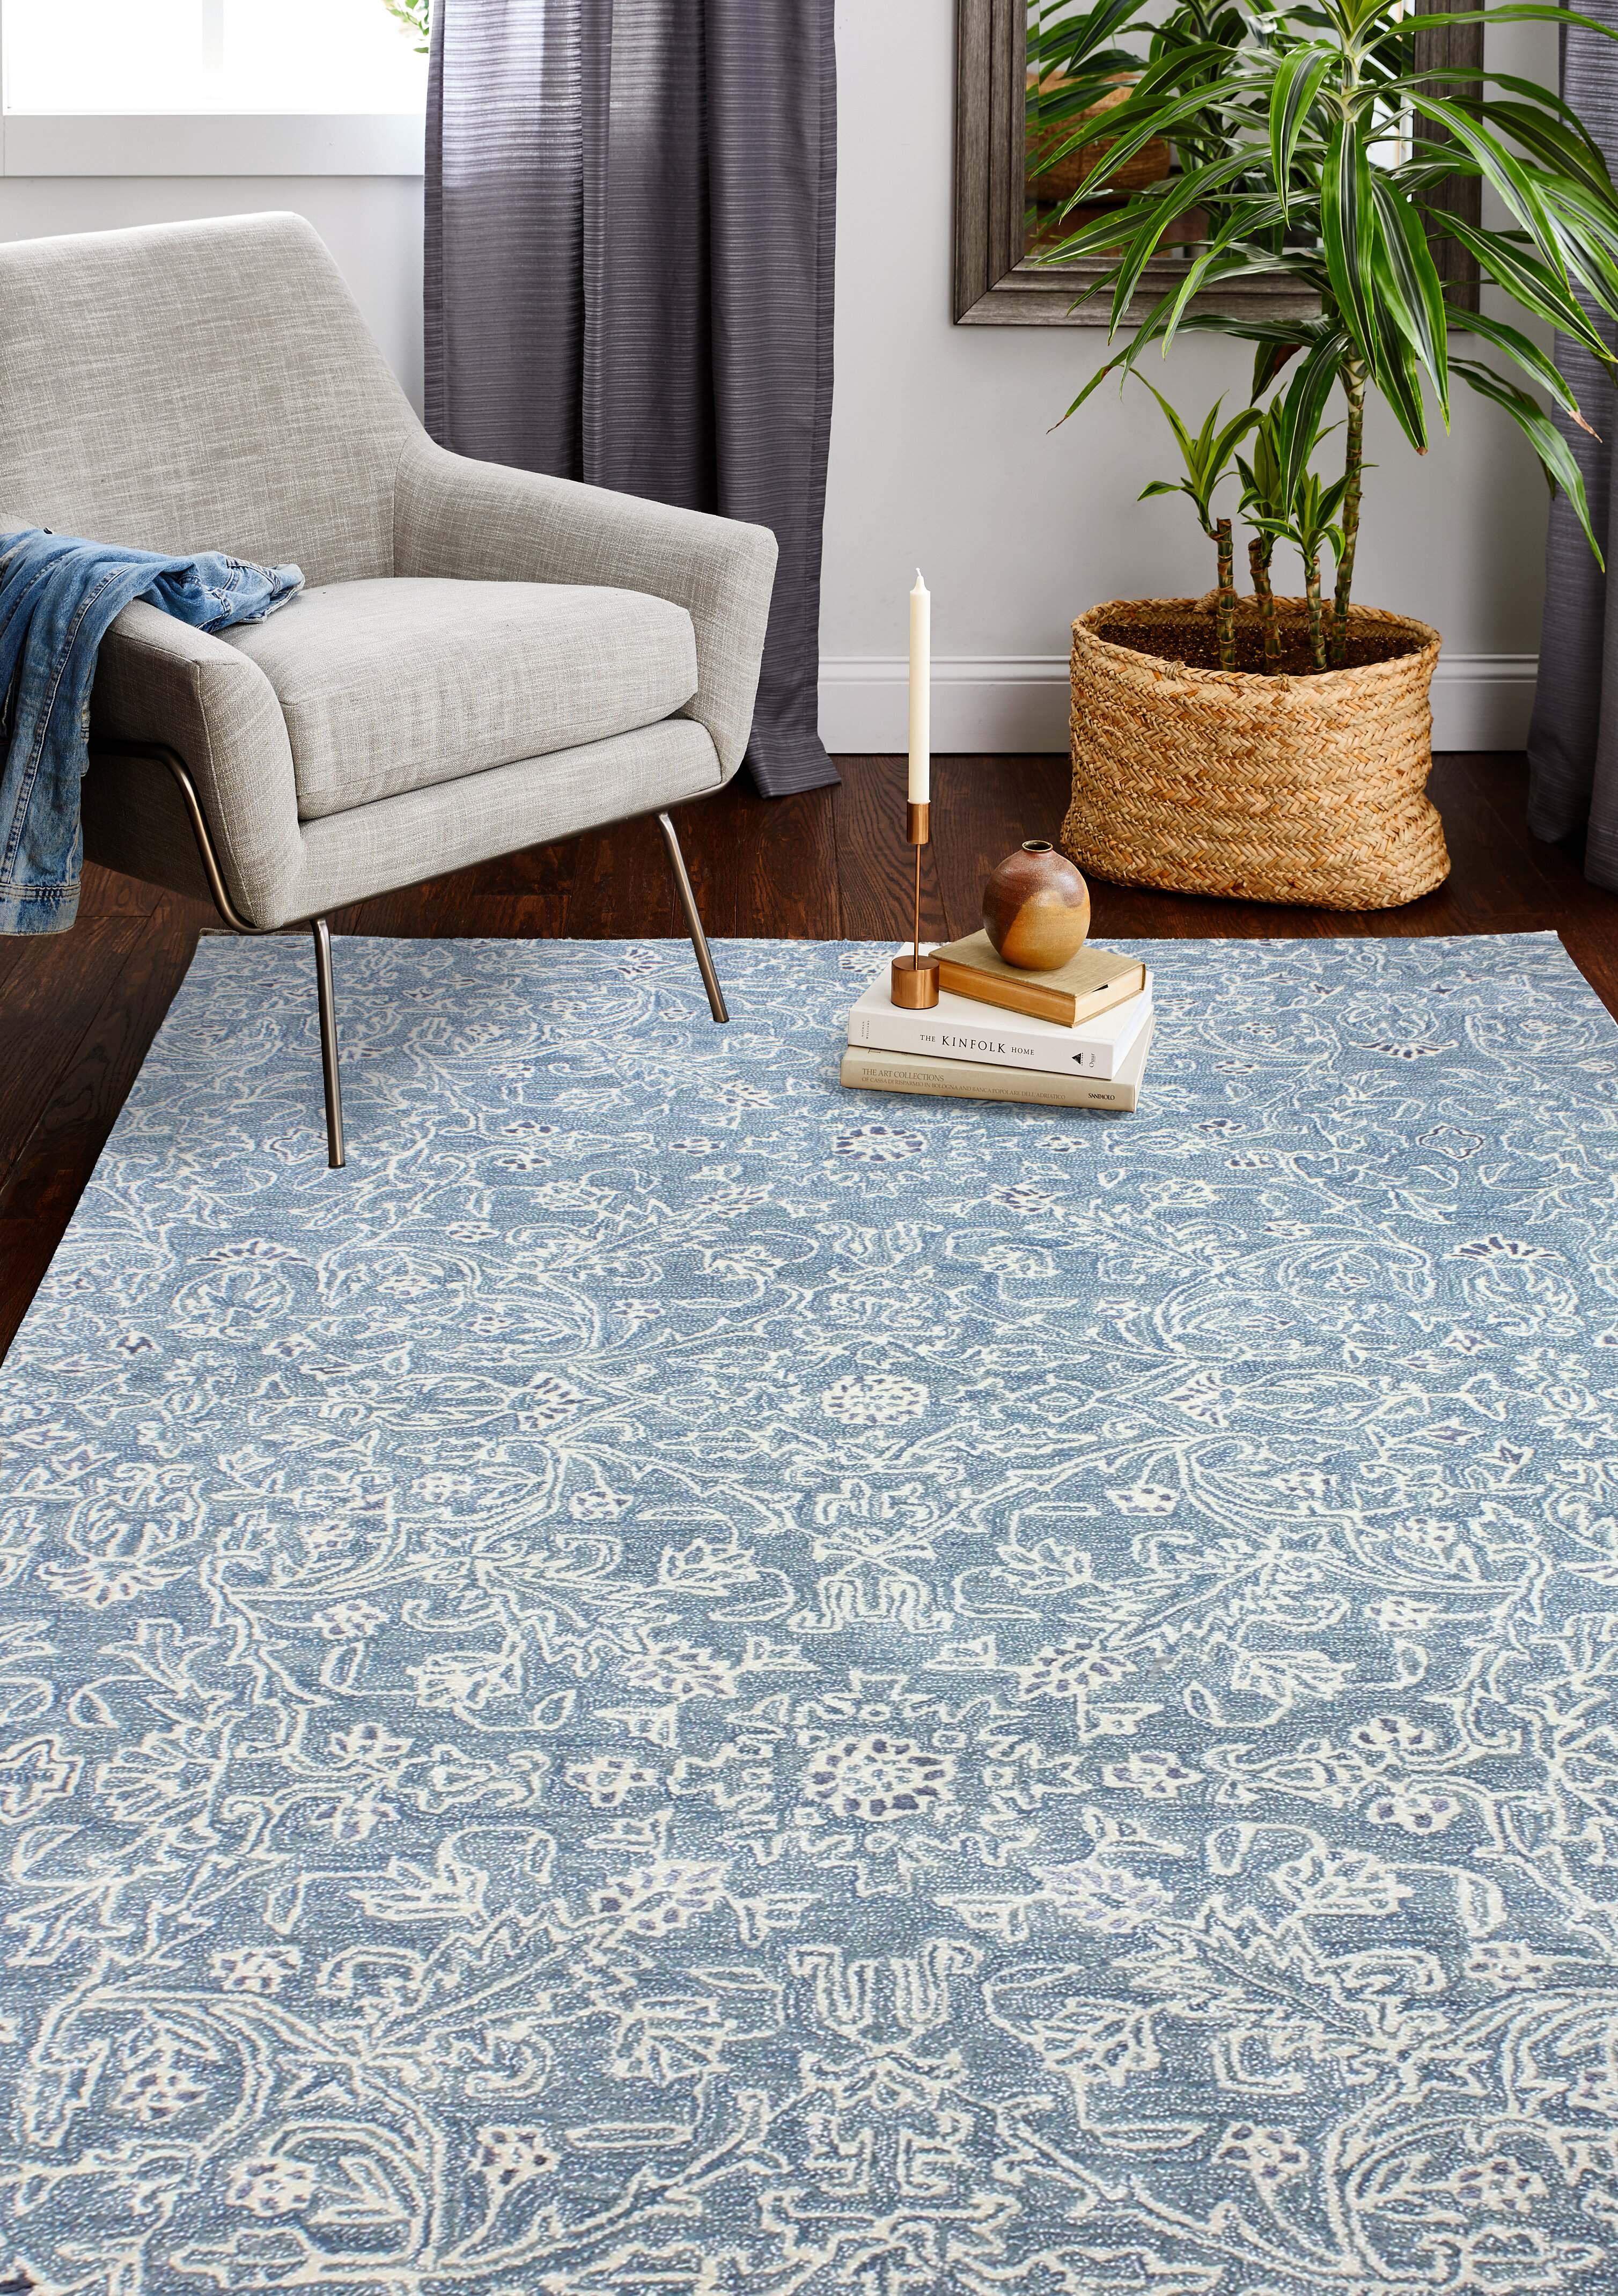 Dakota Fields Arthurs Floral Wool Blue Area Rug Reviews Wayfair